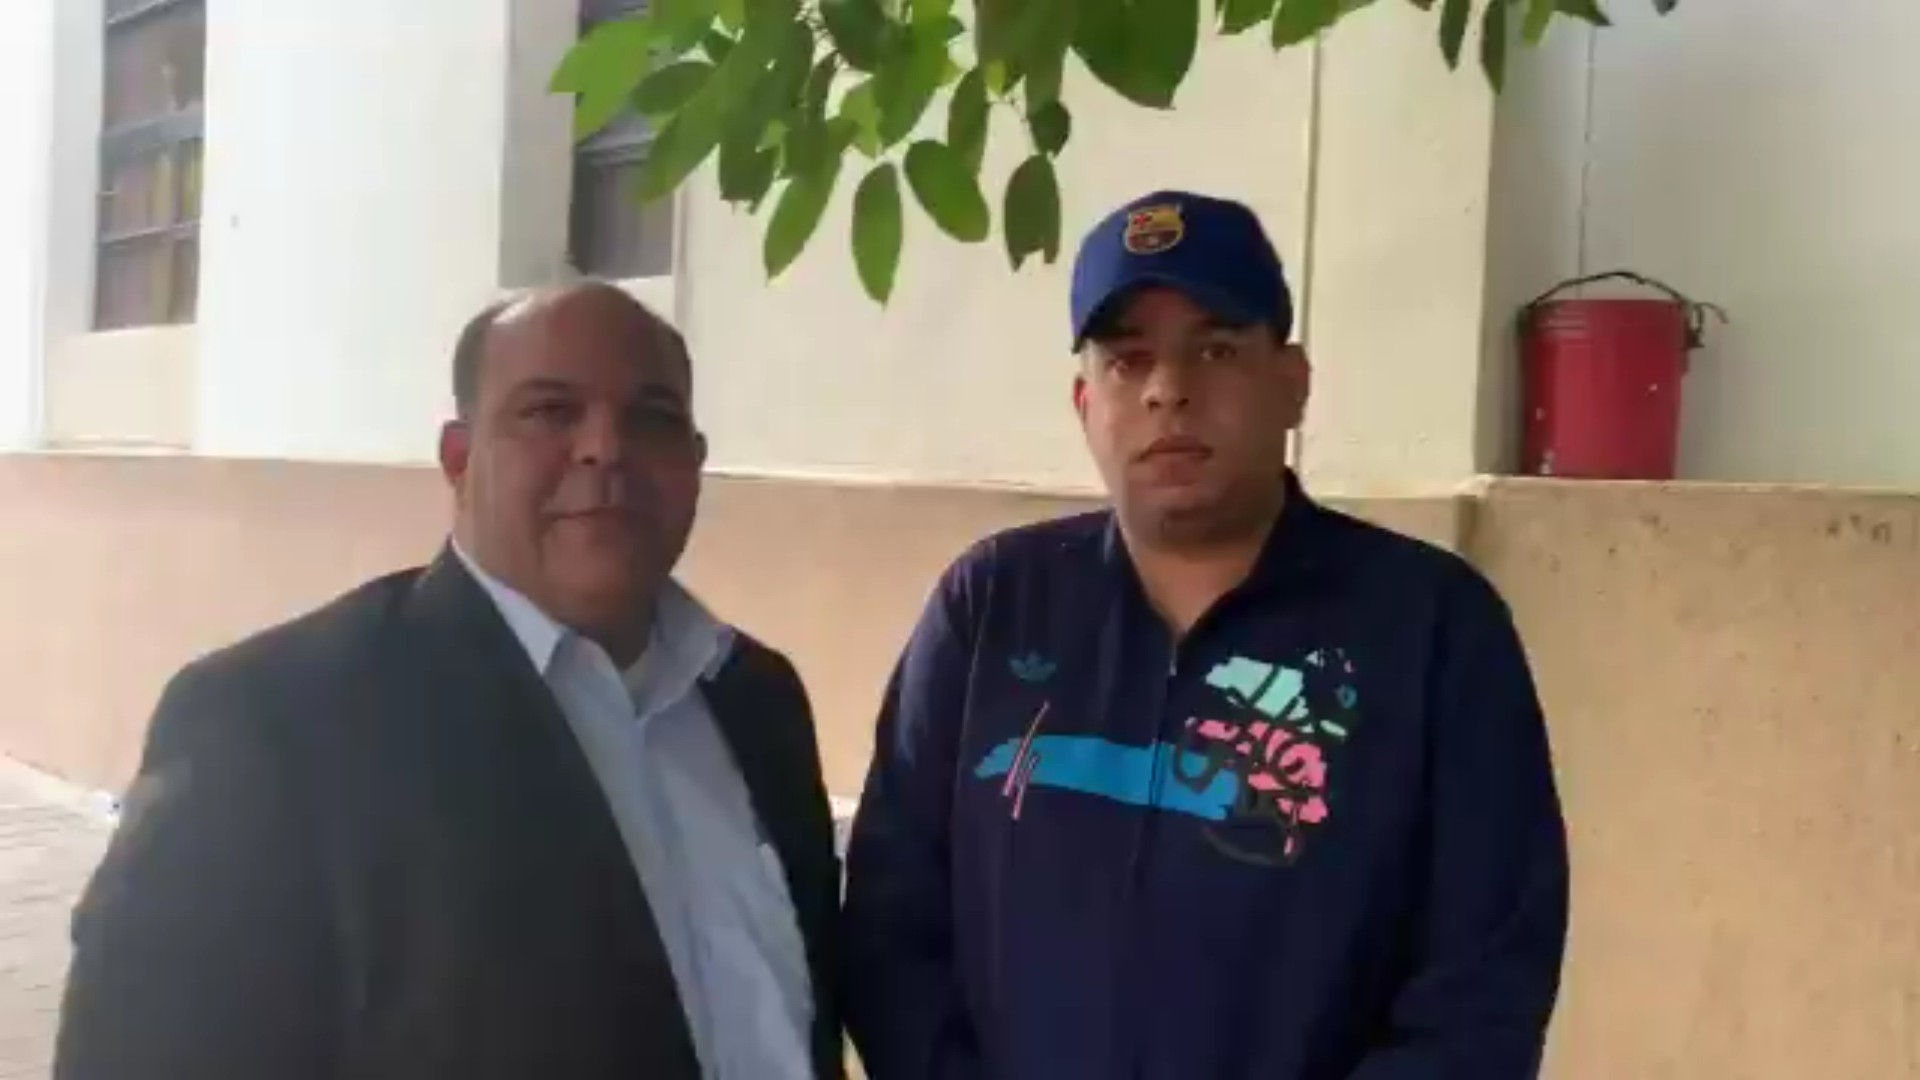 Alias Jaque Mate implicado en red de Cesar el Abusador se entrega la justicia